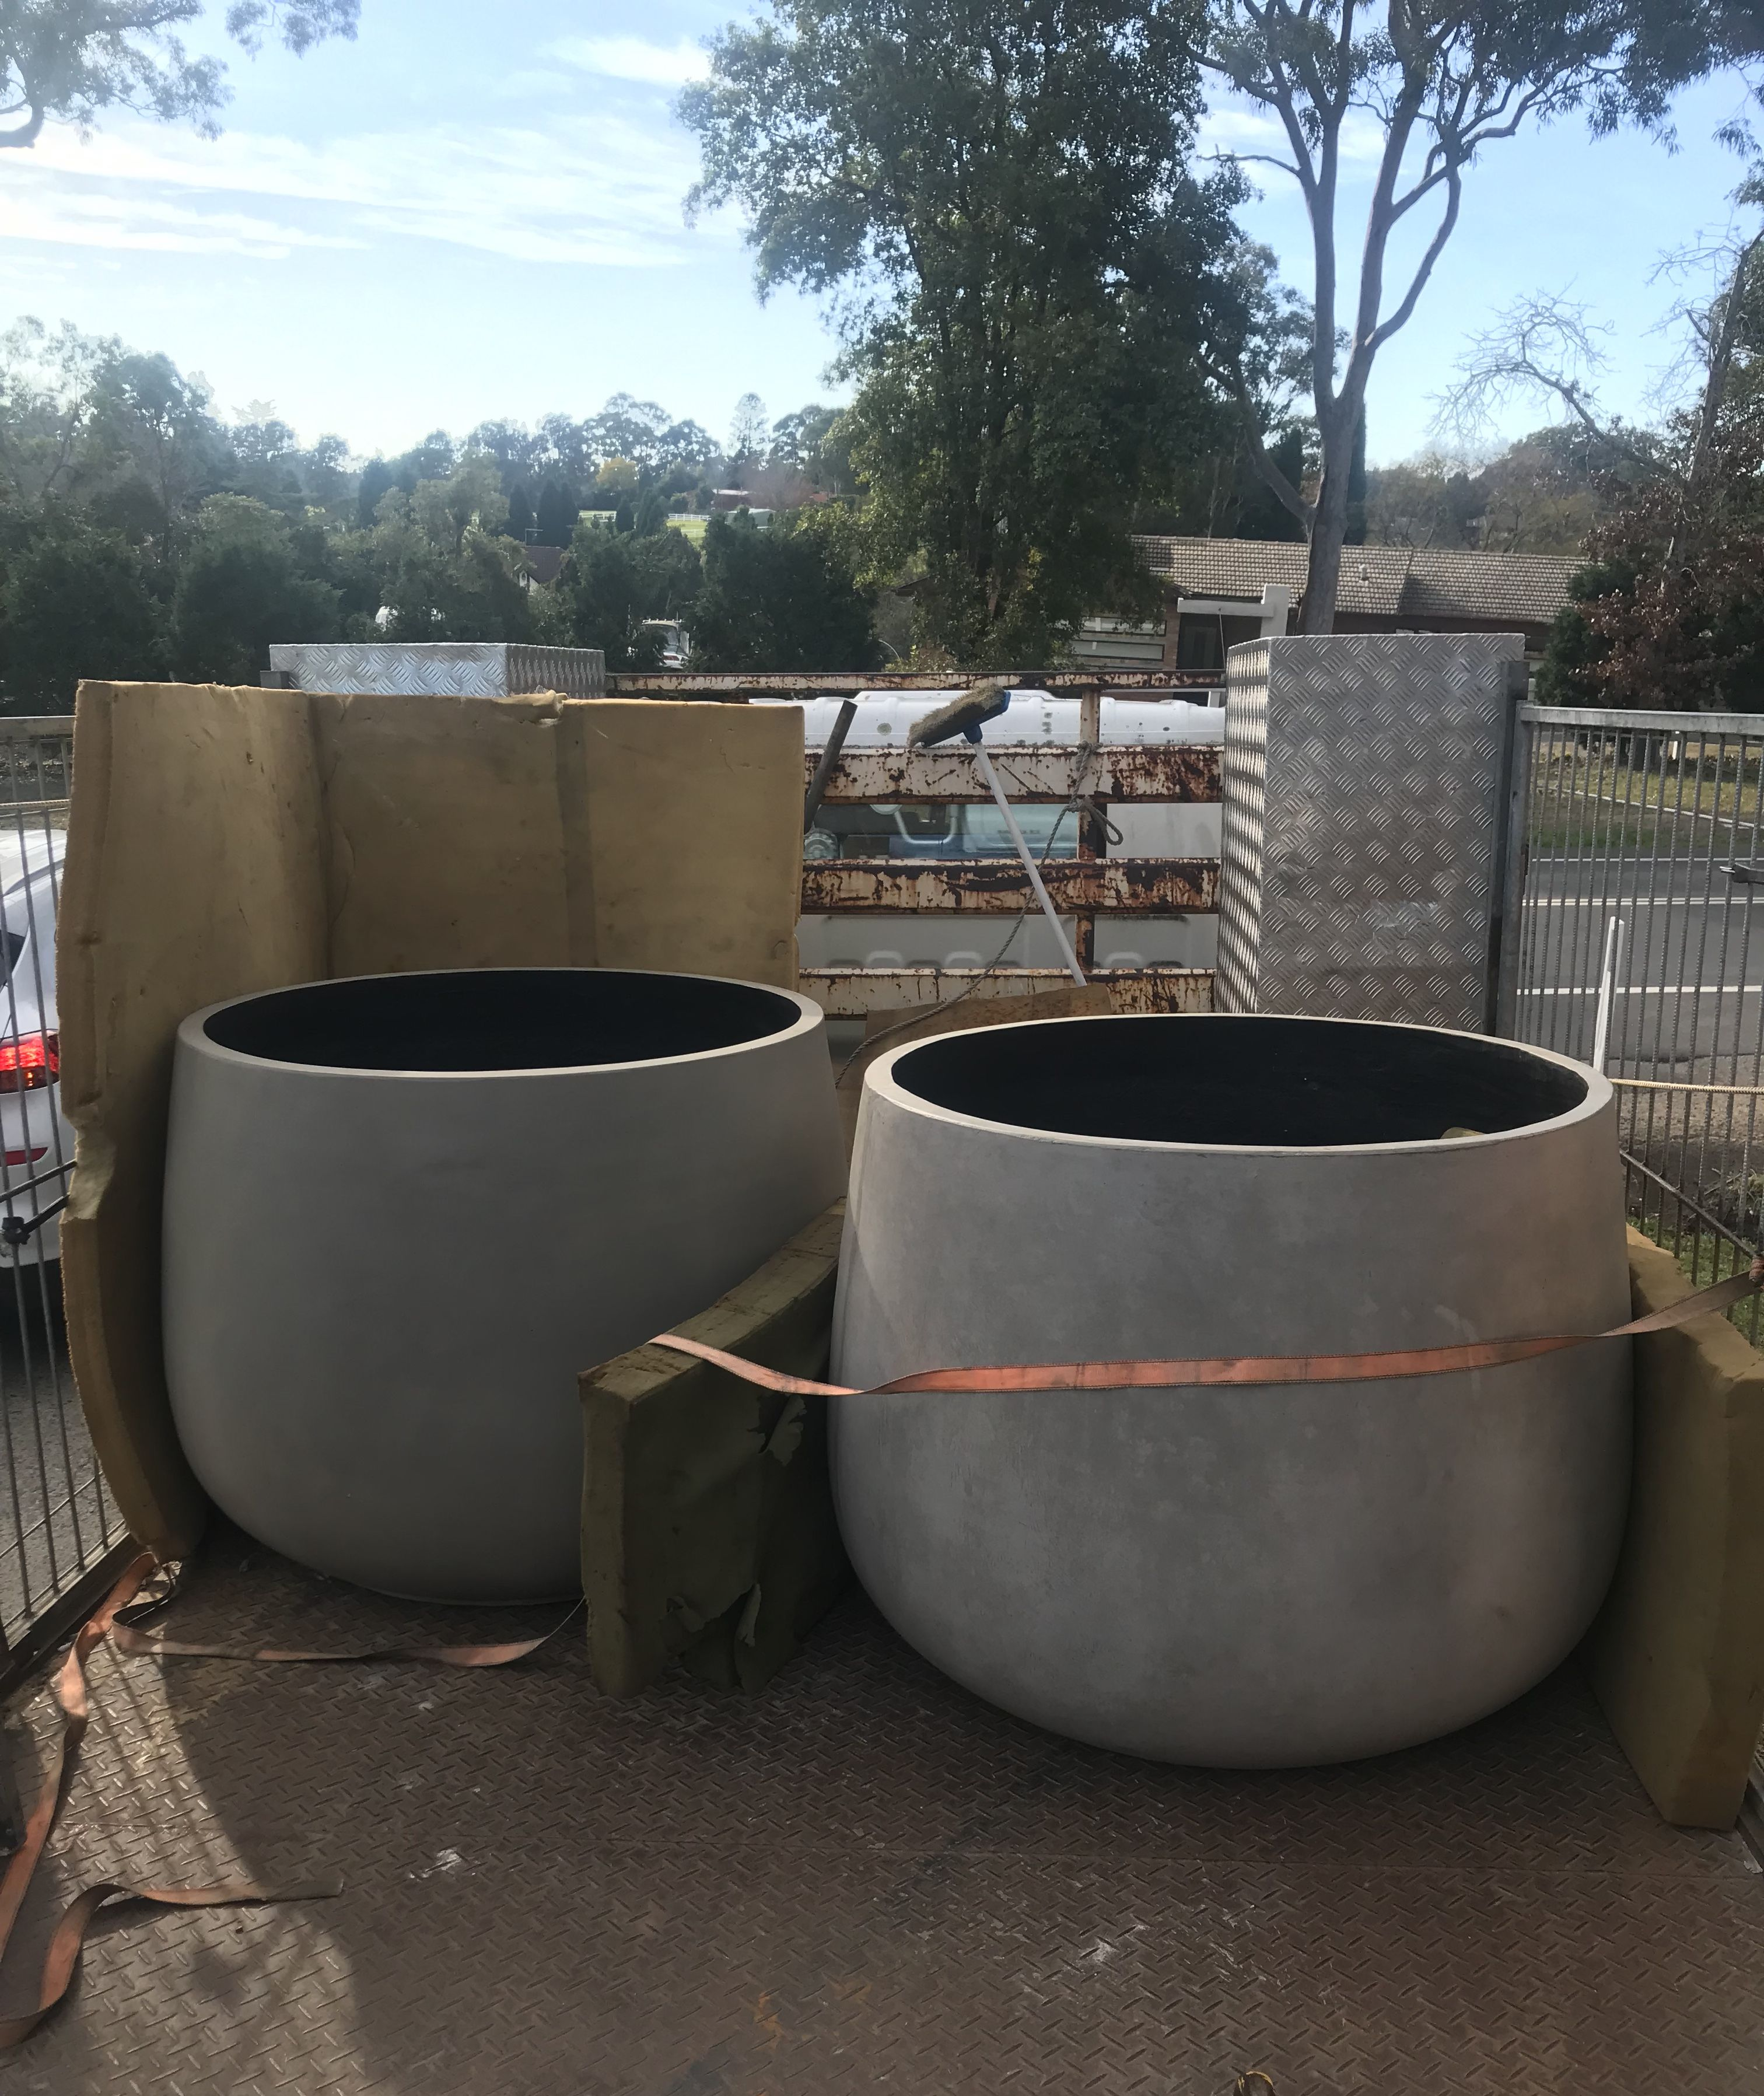 When It Comes To Large Oversized Garden Planters Factory Direct Pots Are Your One Stop D Large Garden Planters Large Planters Pots Extra Large Outdoor Planters